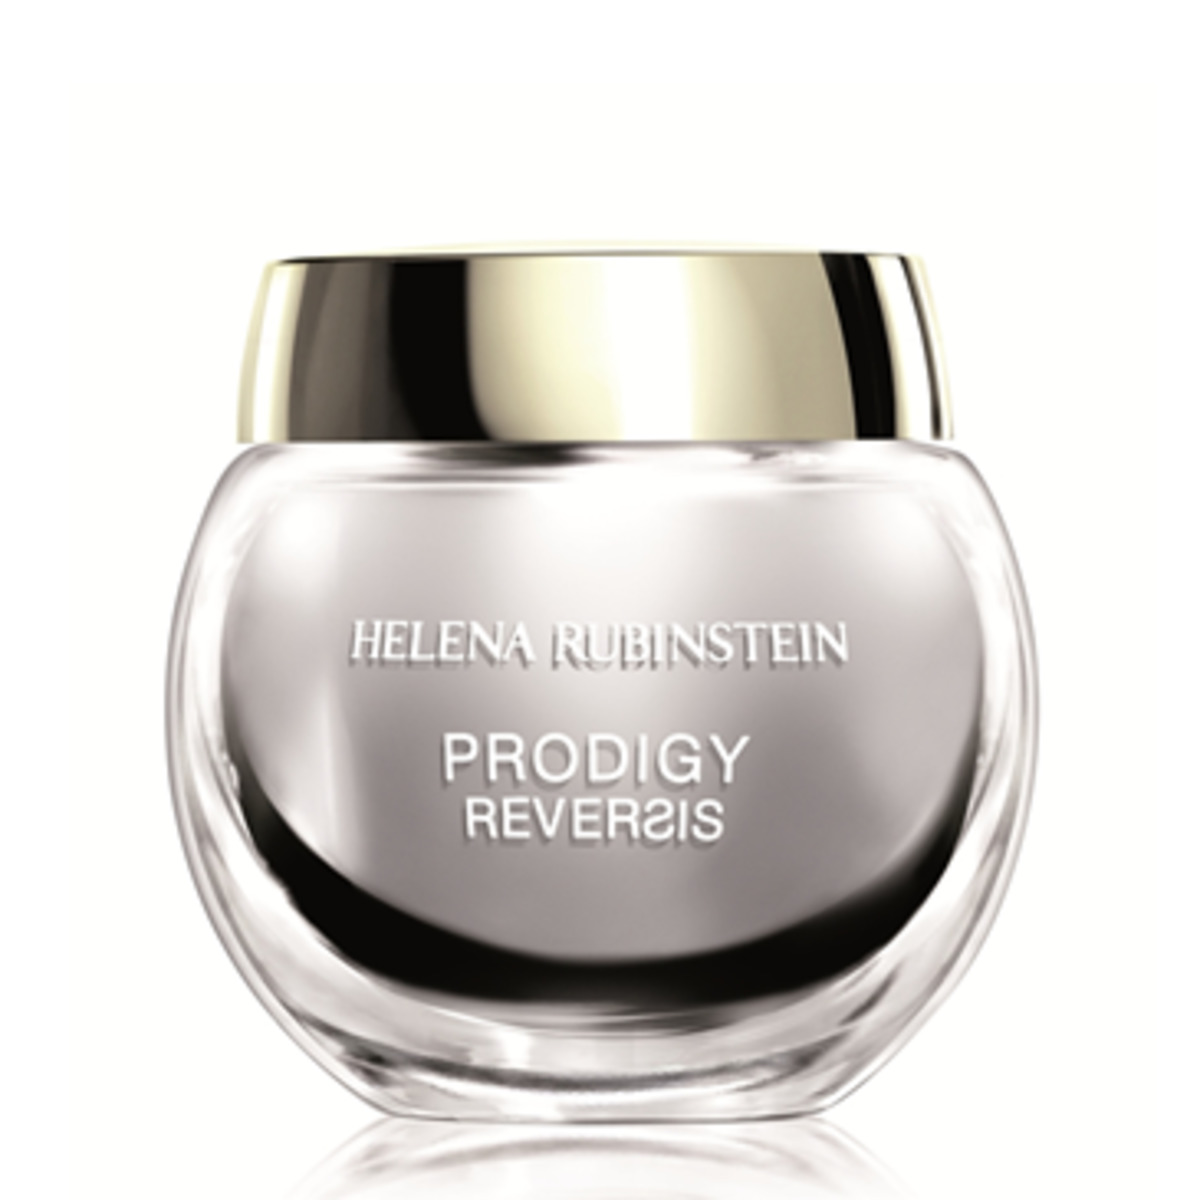 Prodigy Reversis Cream Dry Skin 50ml [Parallel Import]